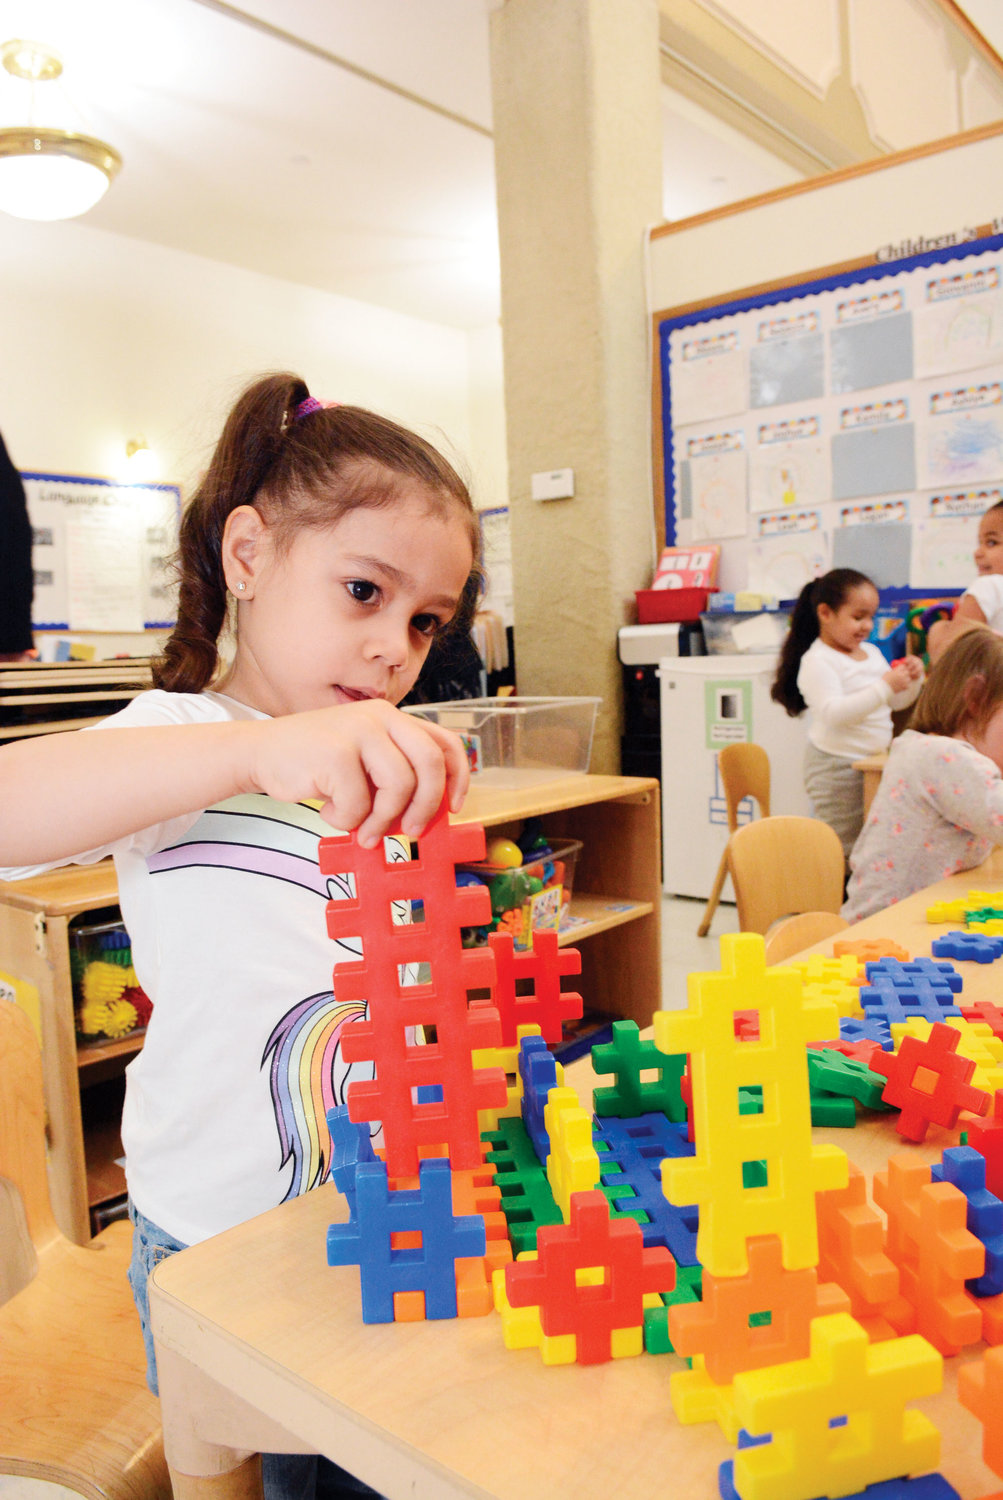 Mya Torres, 3, is using building blocks during Cardinal Dolan's visit March 14 to the Msgr. Patrick J. Boyle Head Start program.